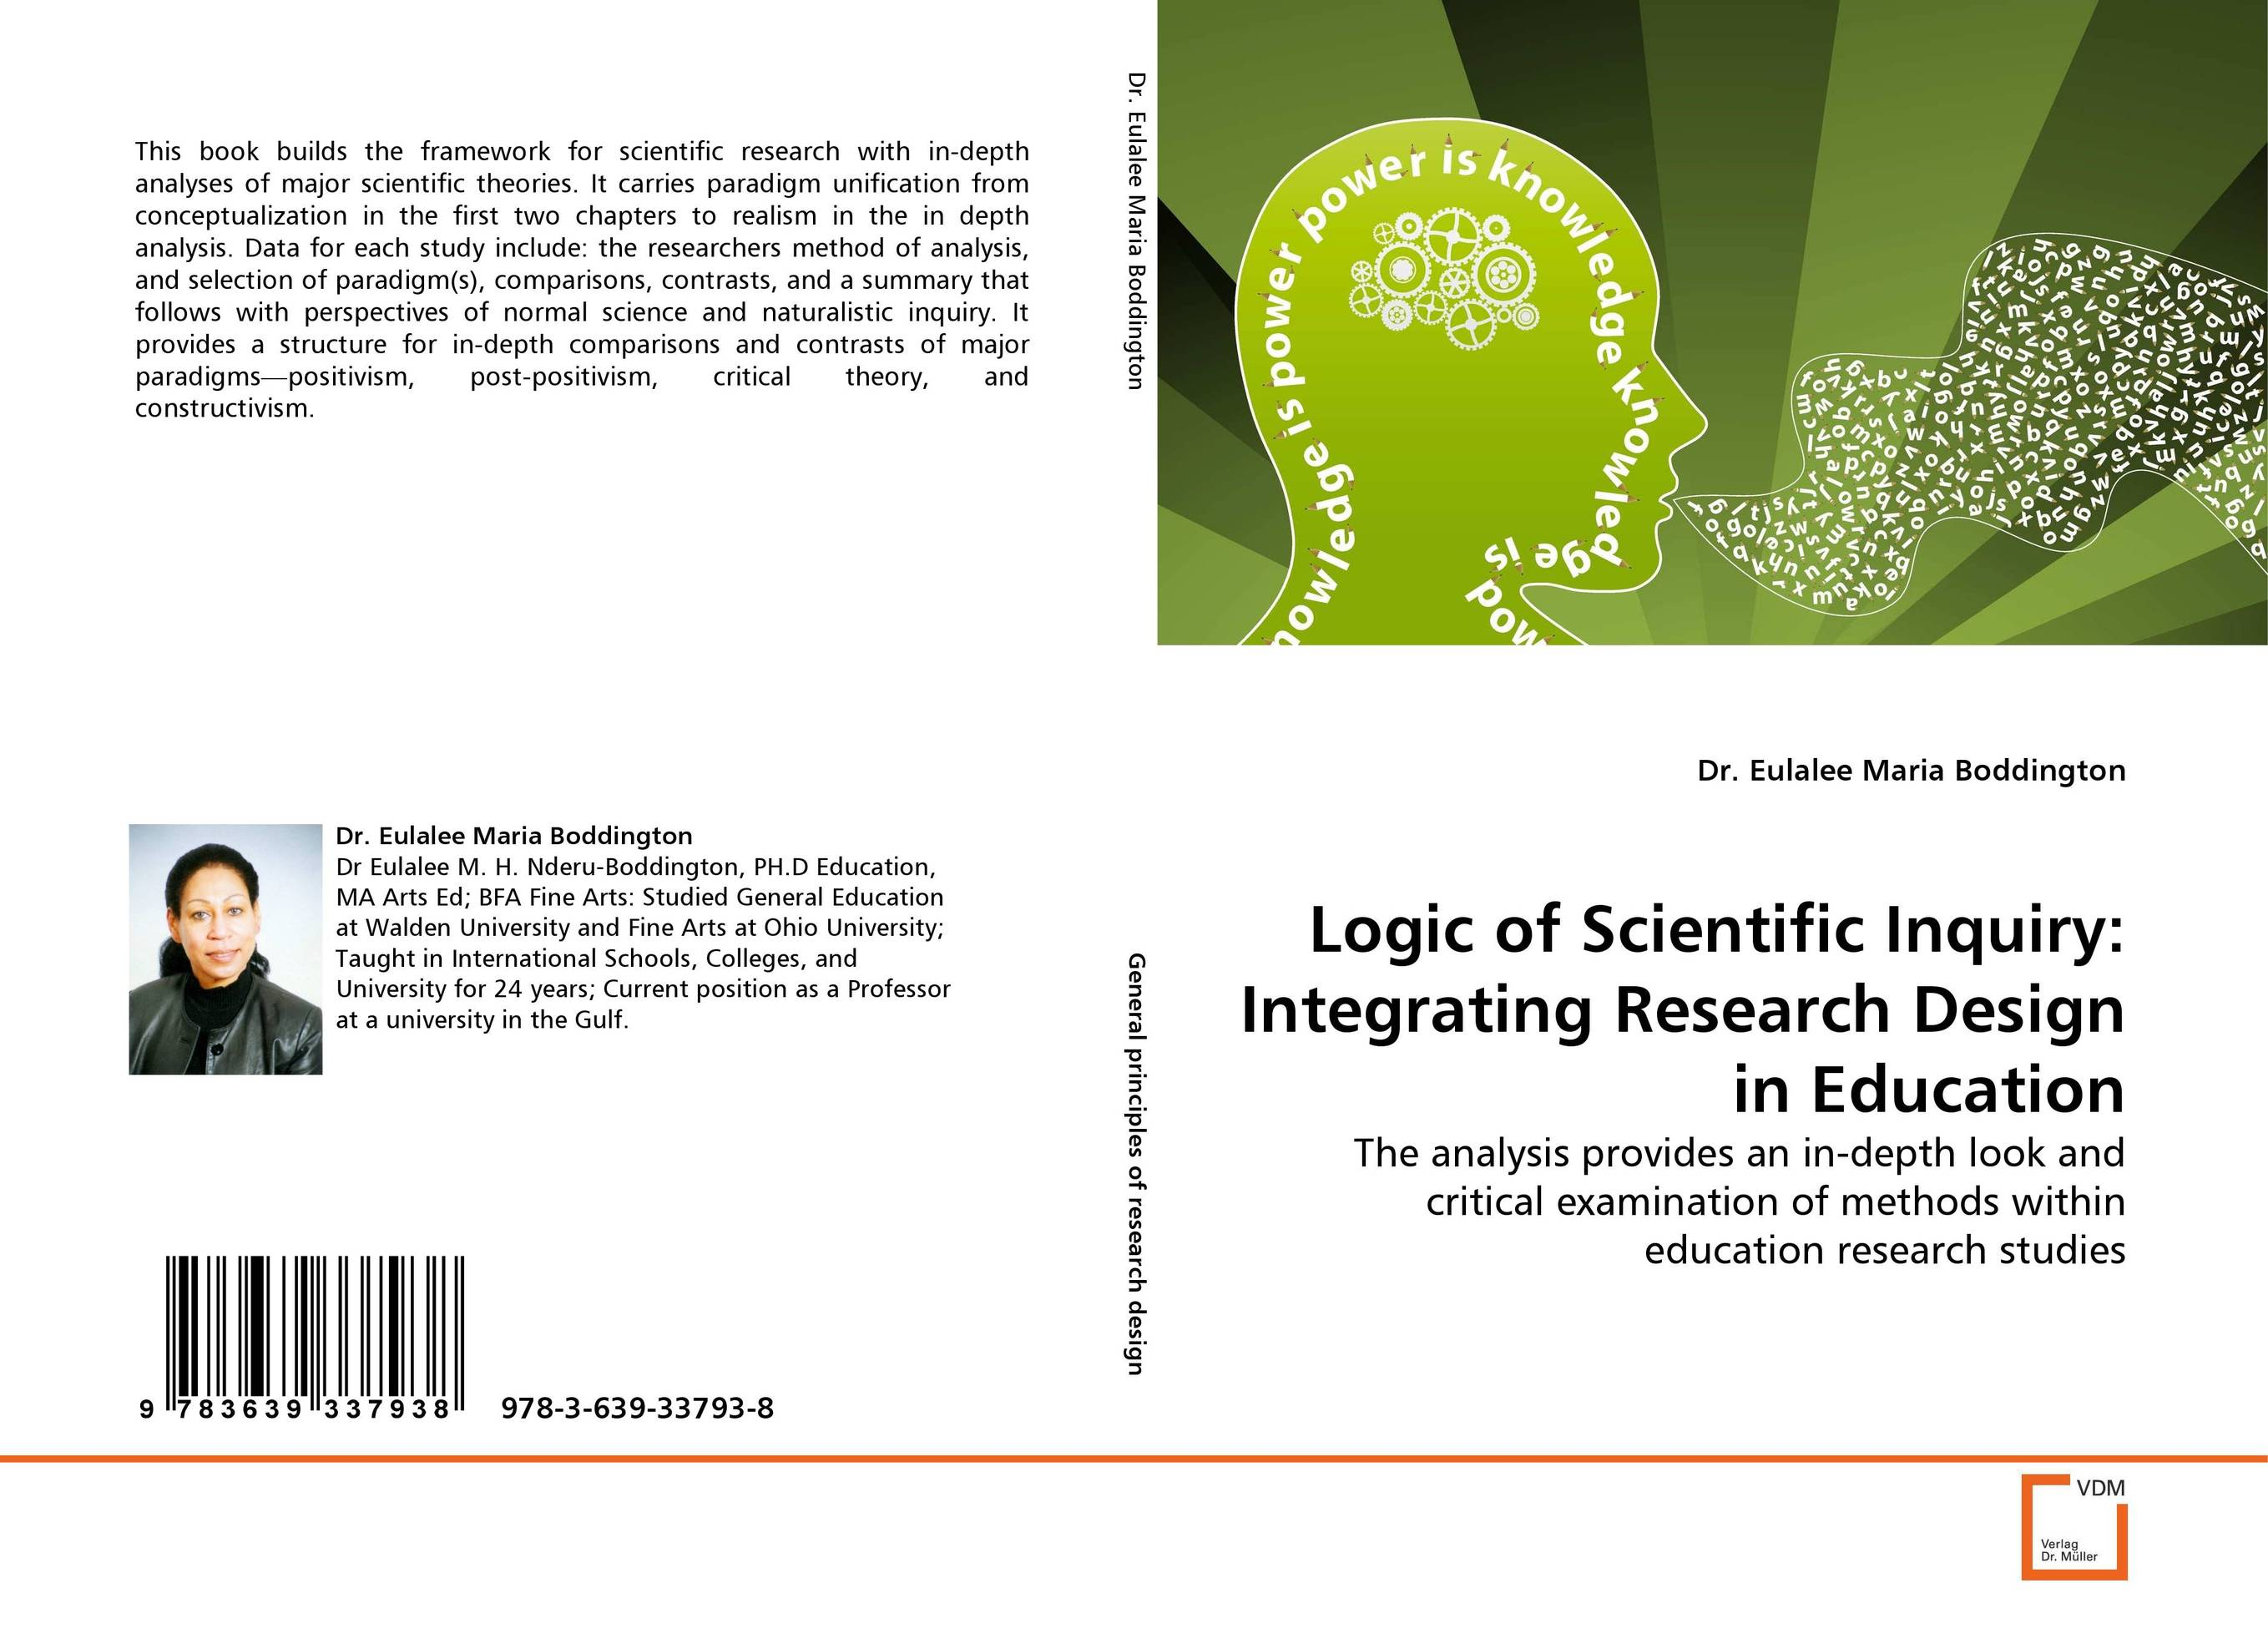 Logic of Scientific Inquiry: Integrating Research Design in Education scientific and mythological ways of knowing in anthropology